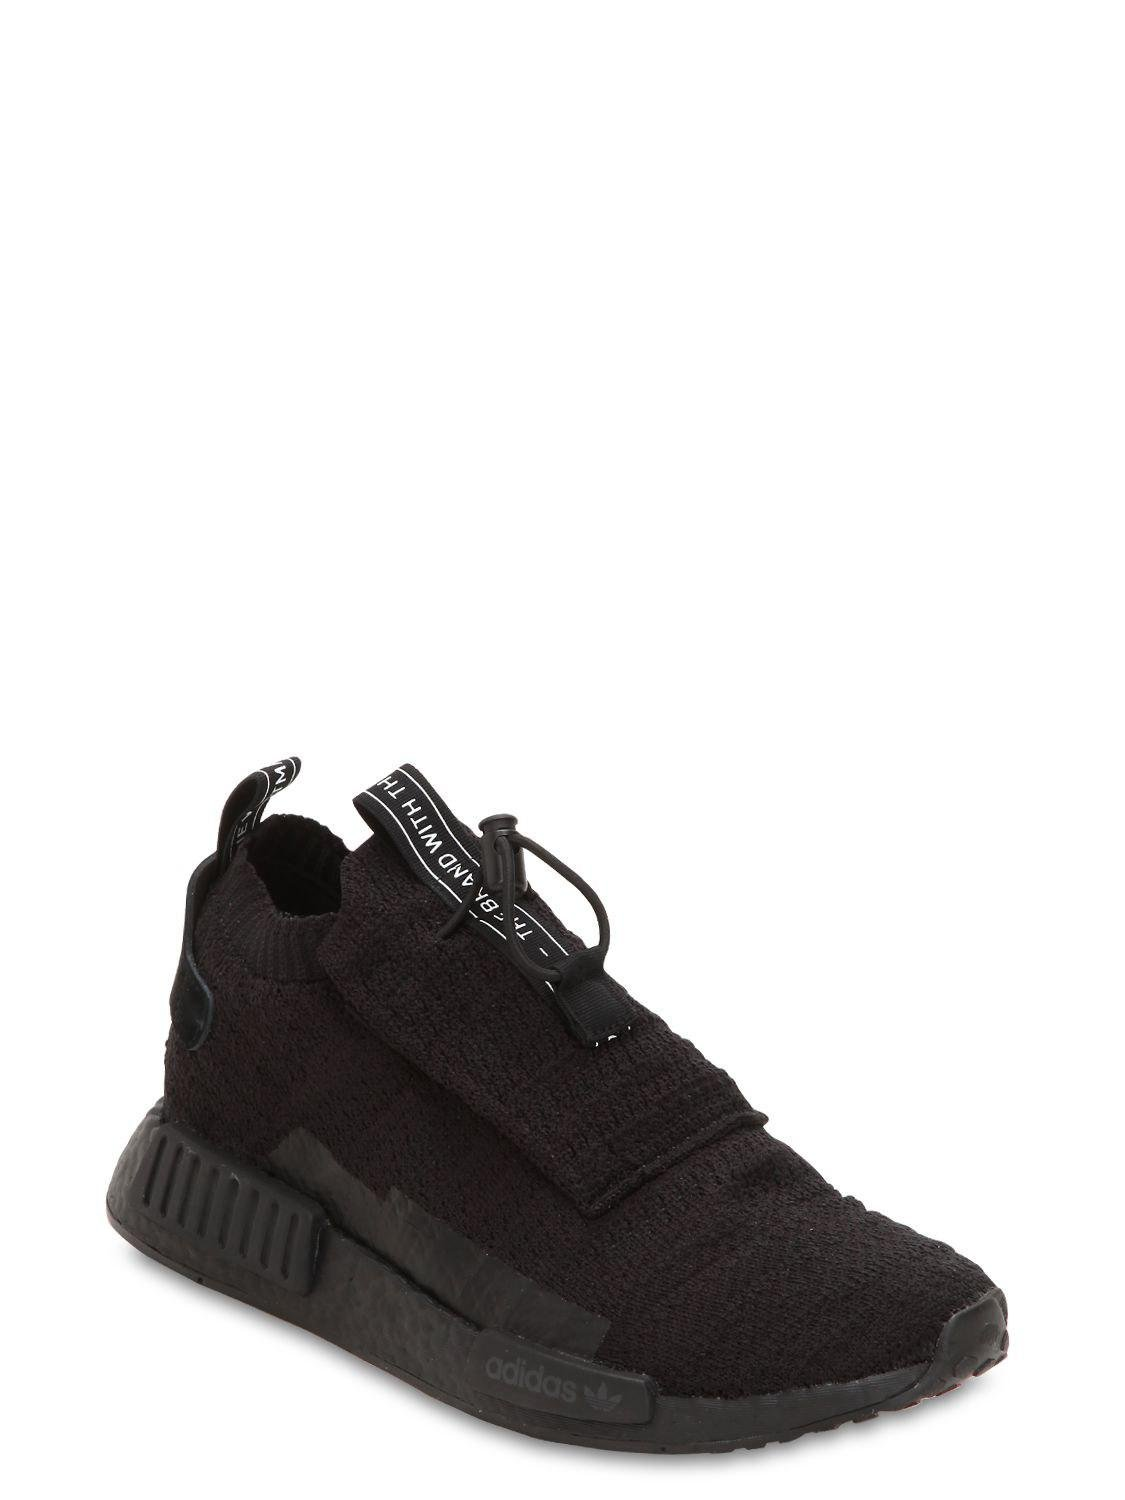 new product df6d8 15d2e adidas-originals-BLACK-Nmd-Ts1-Primeknit-Sneakers.jpeg